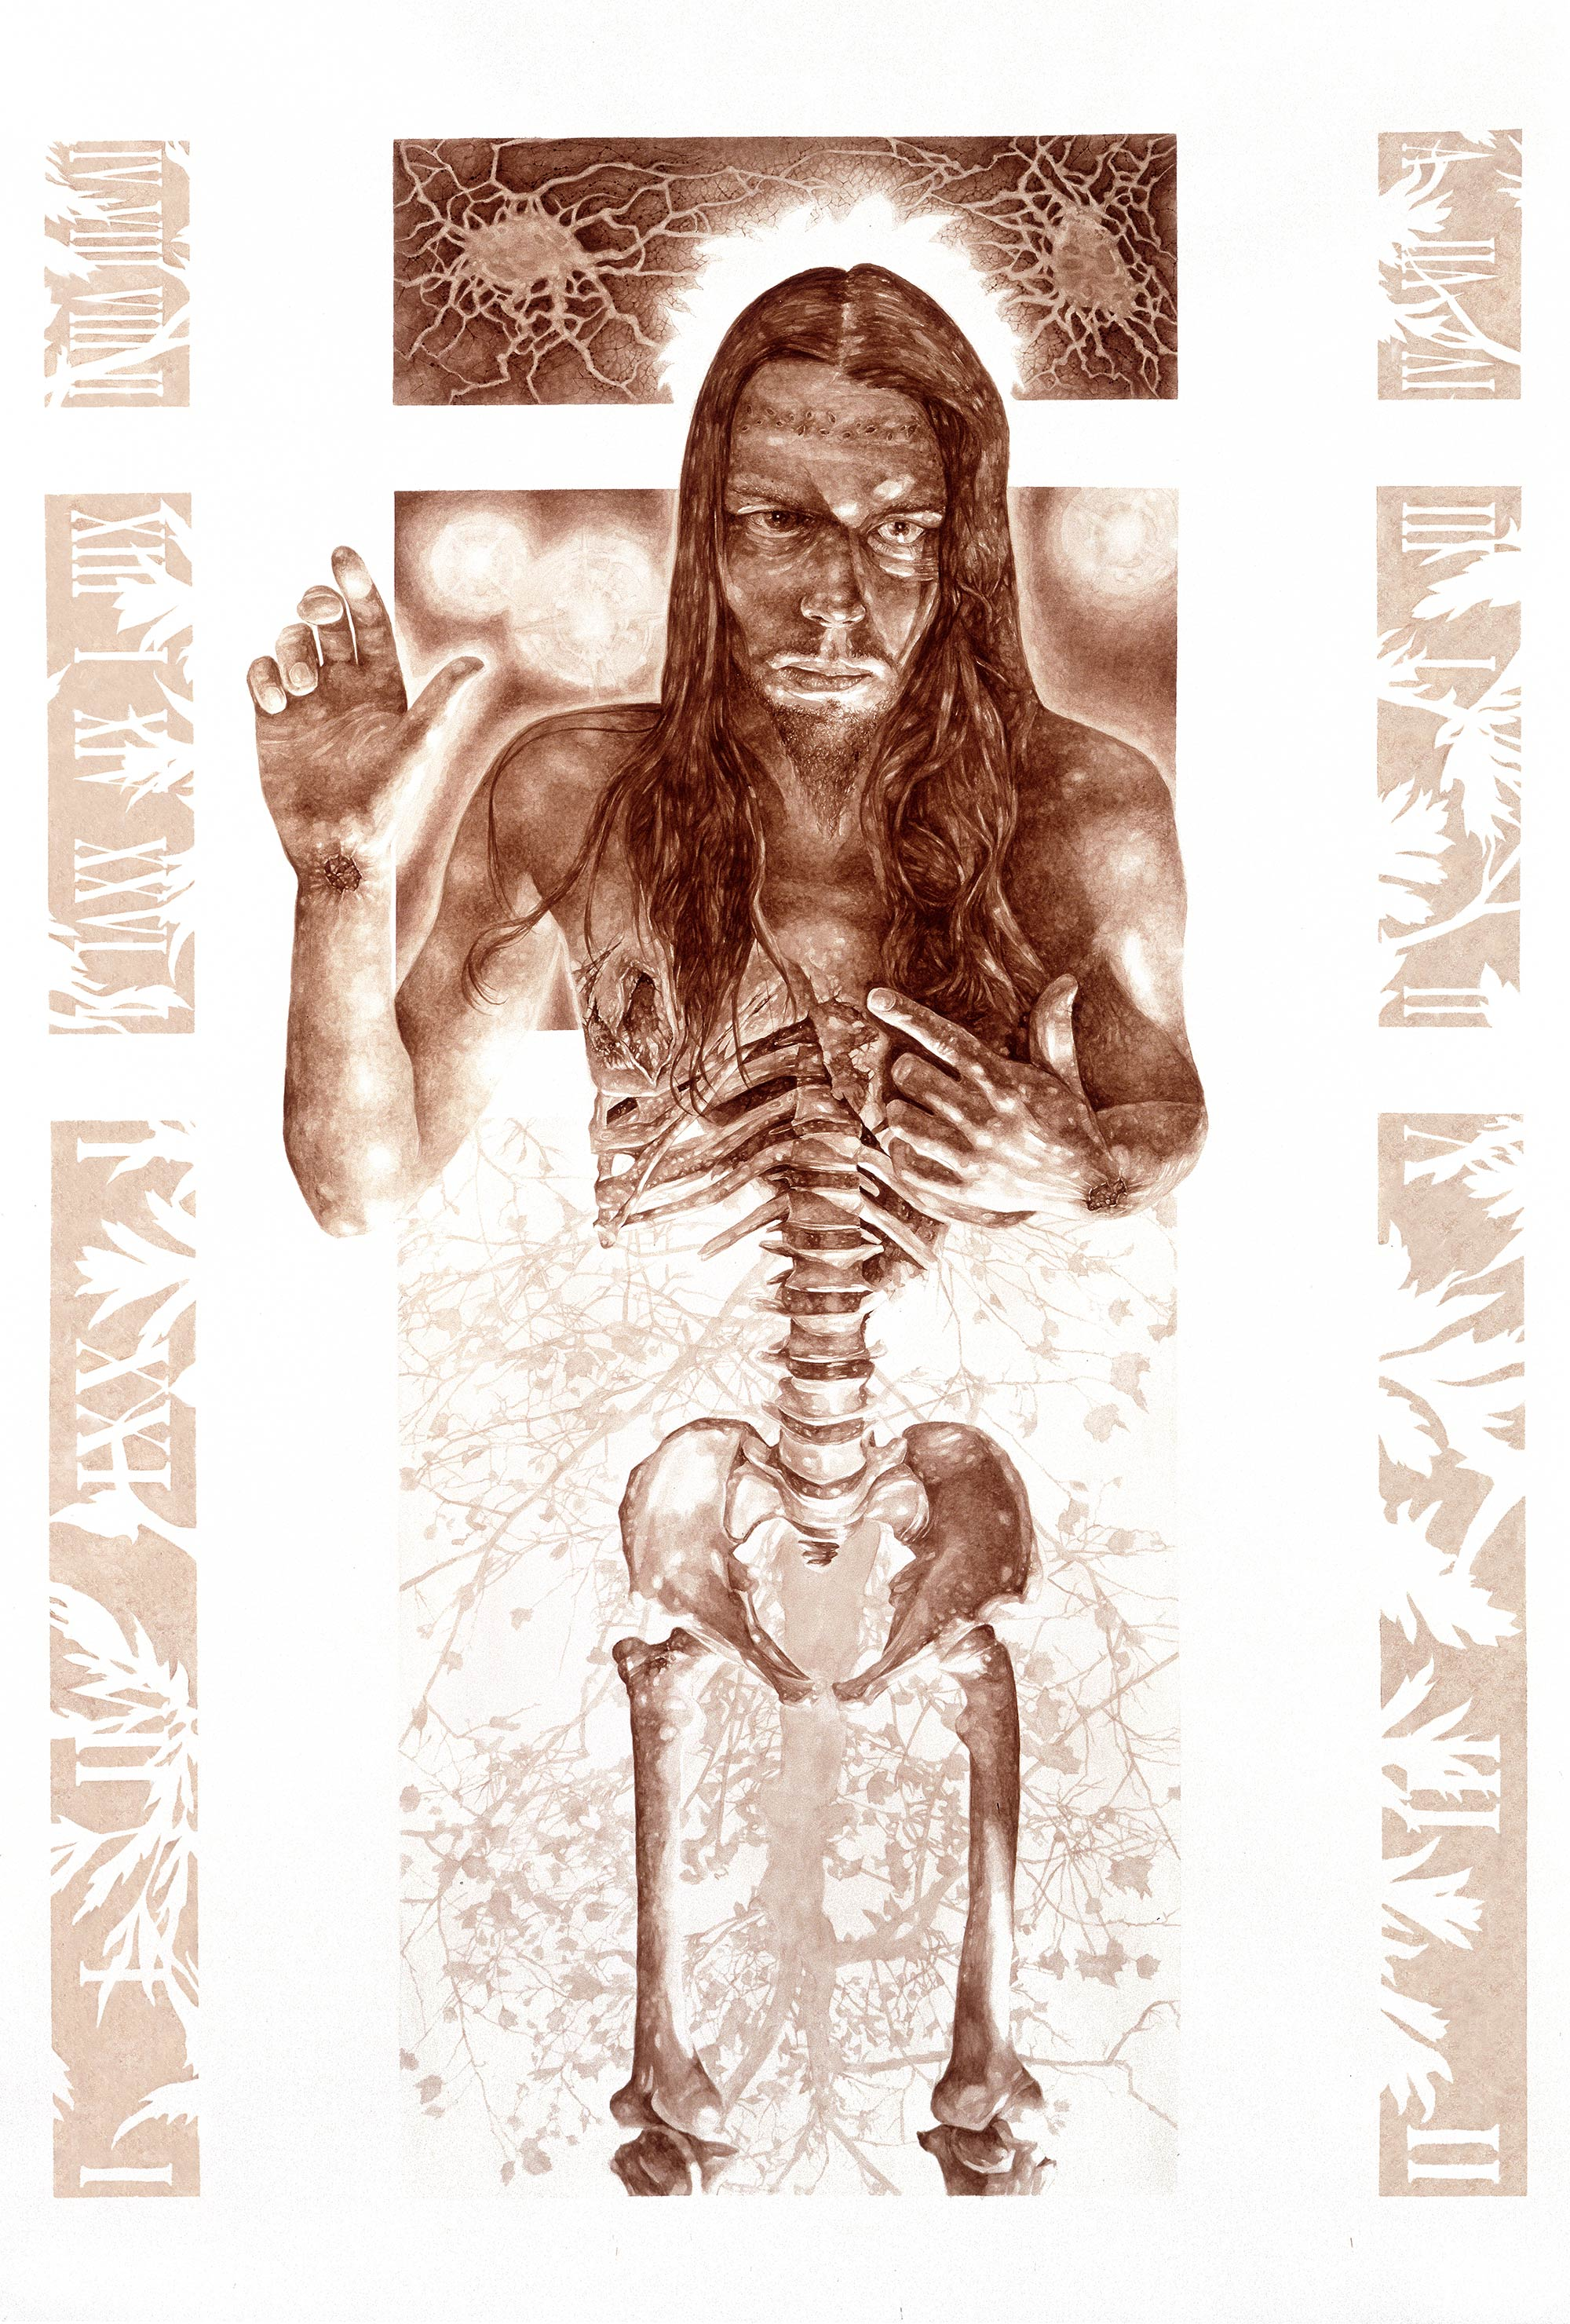 Vincent Castiglia - Stings of the Lash, blood painting